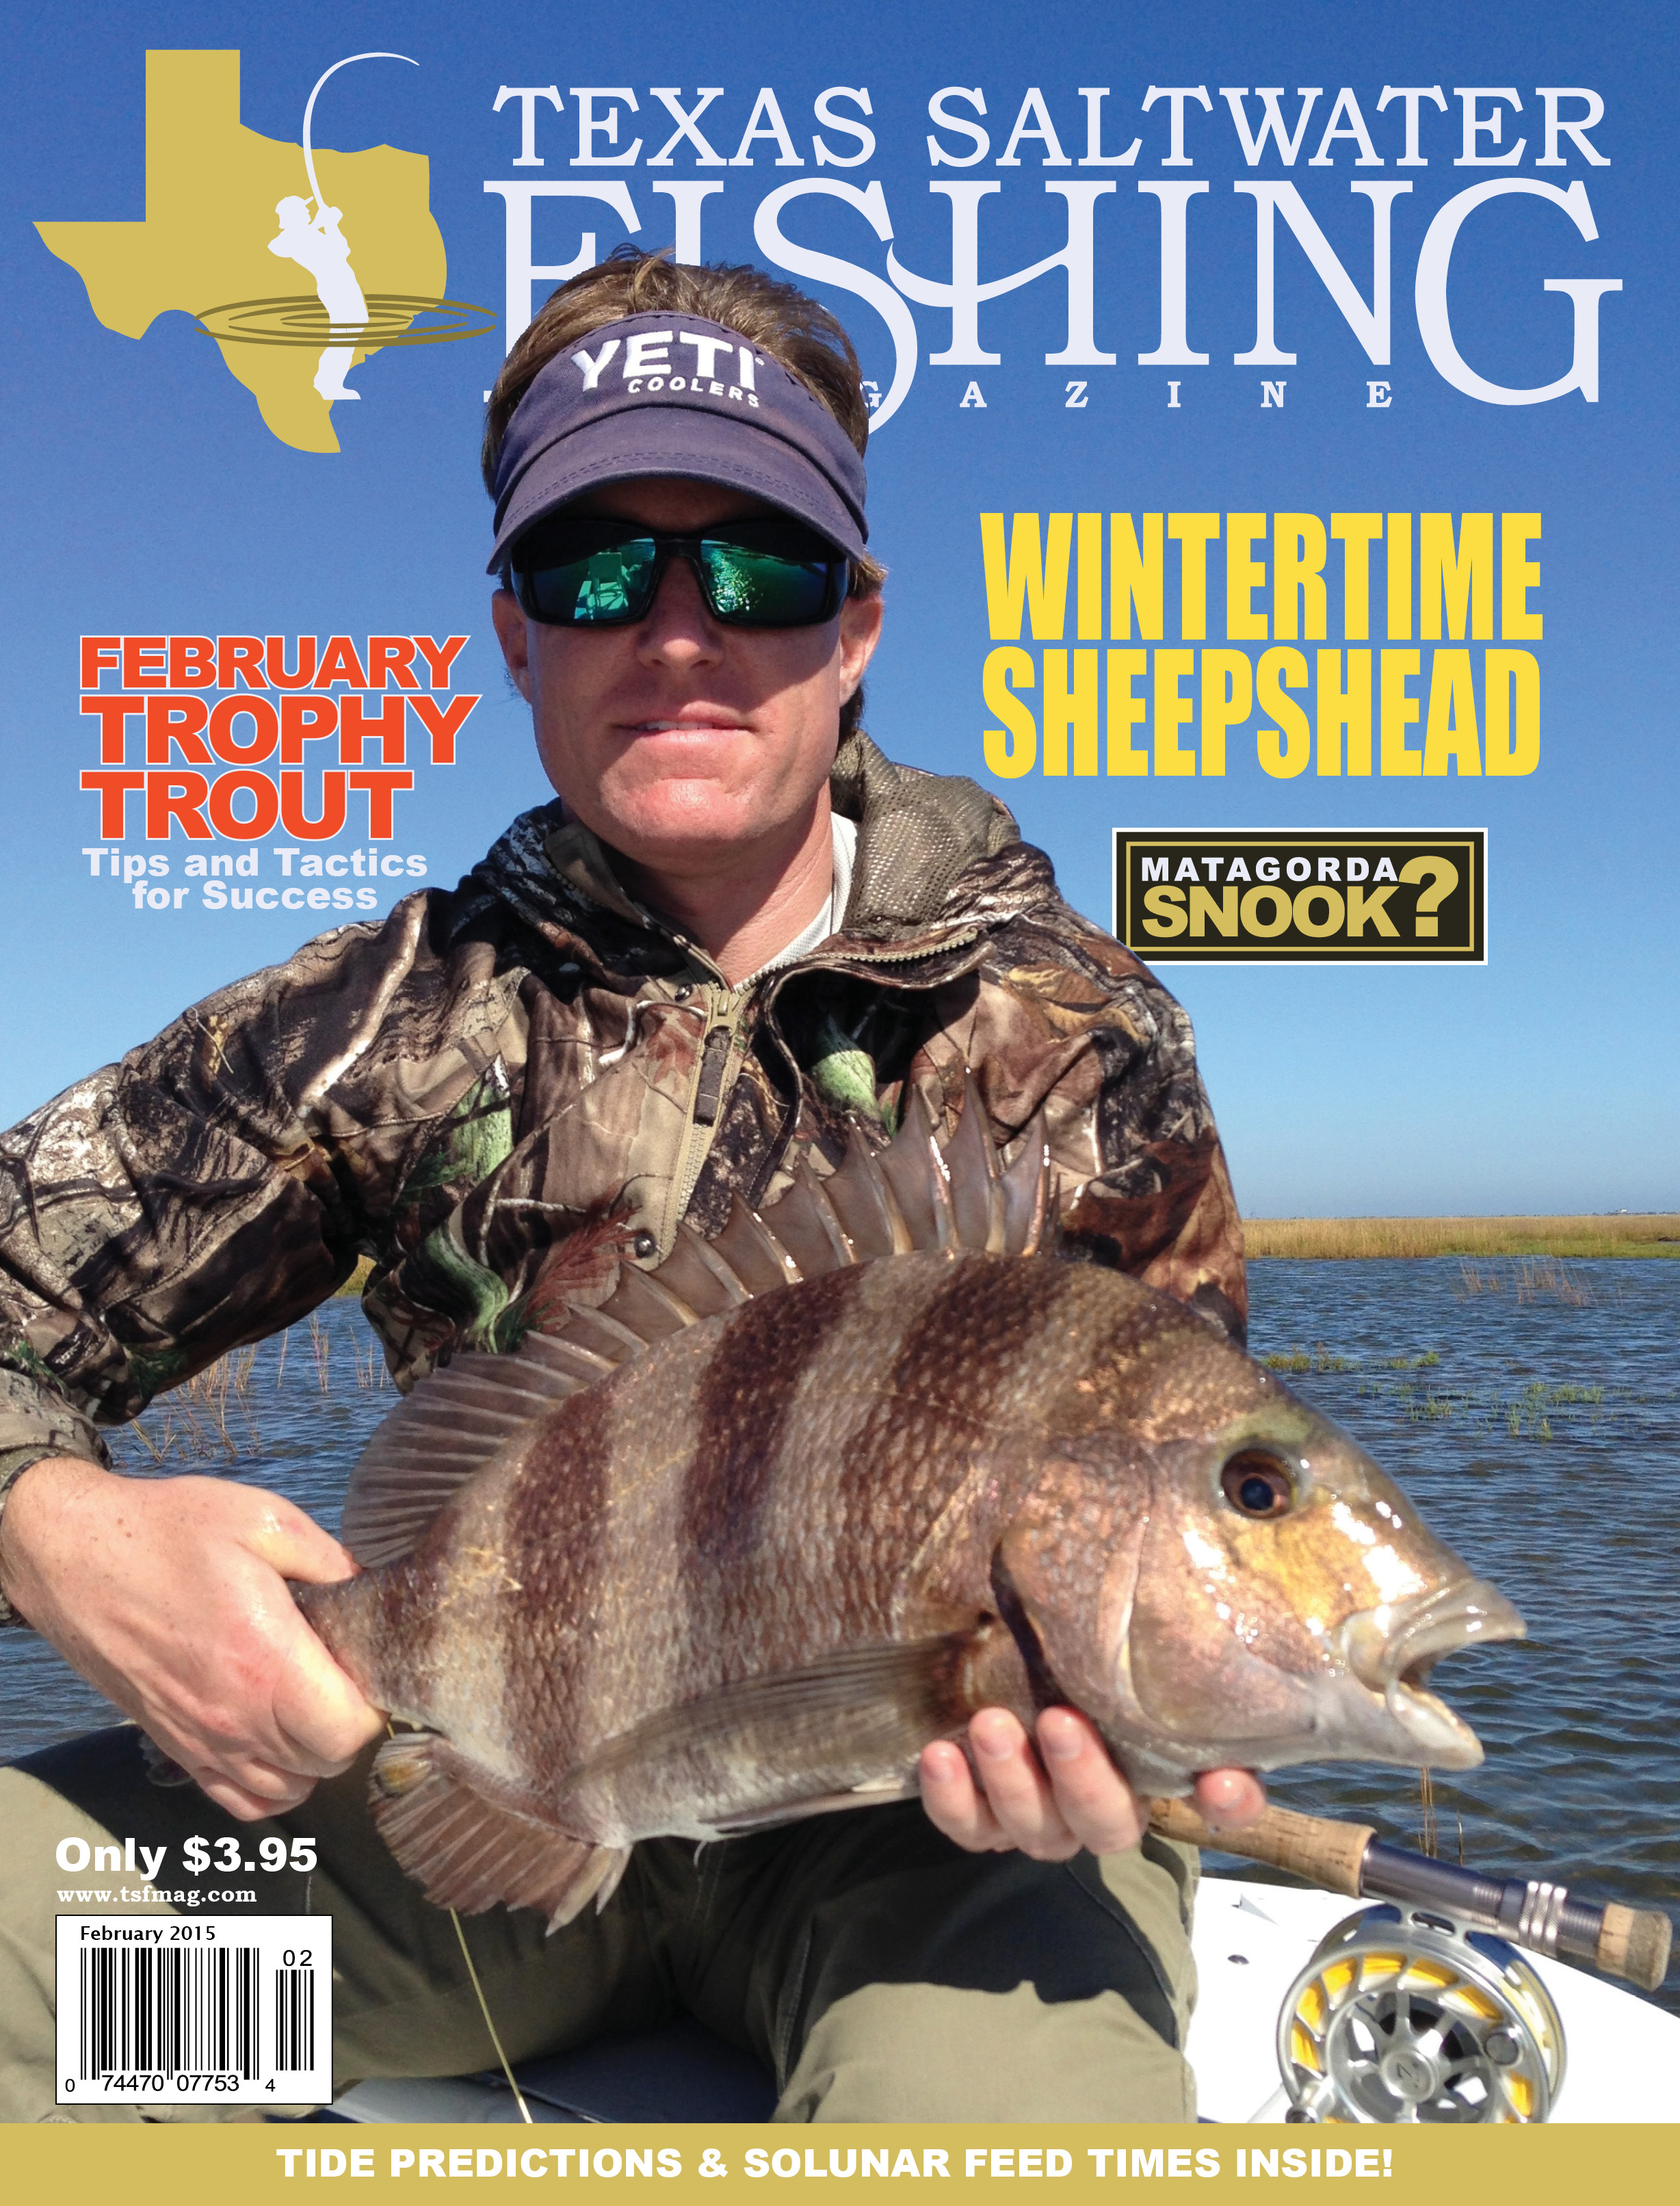 Texas saltwater fishing magazine february 2015 for Texas saltwater fishing magazine